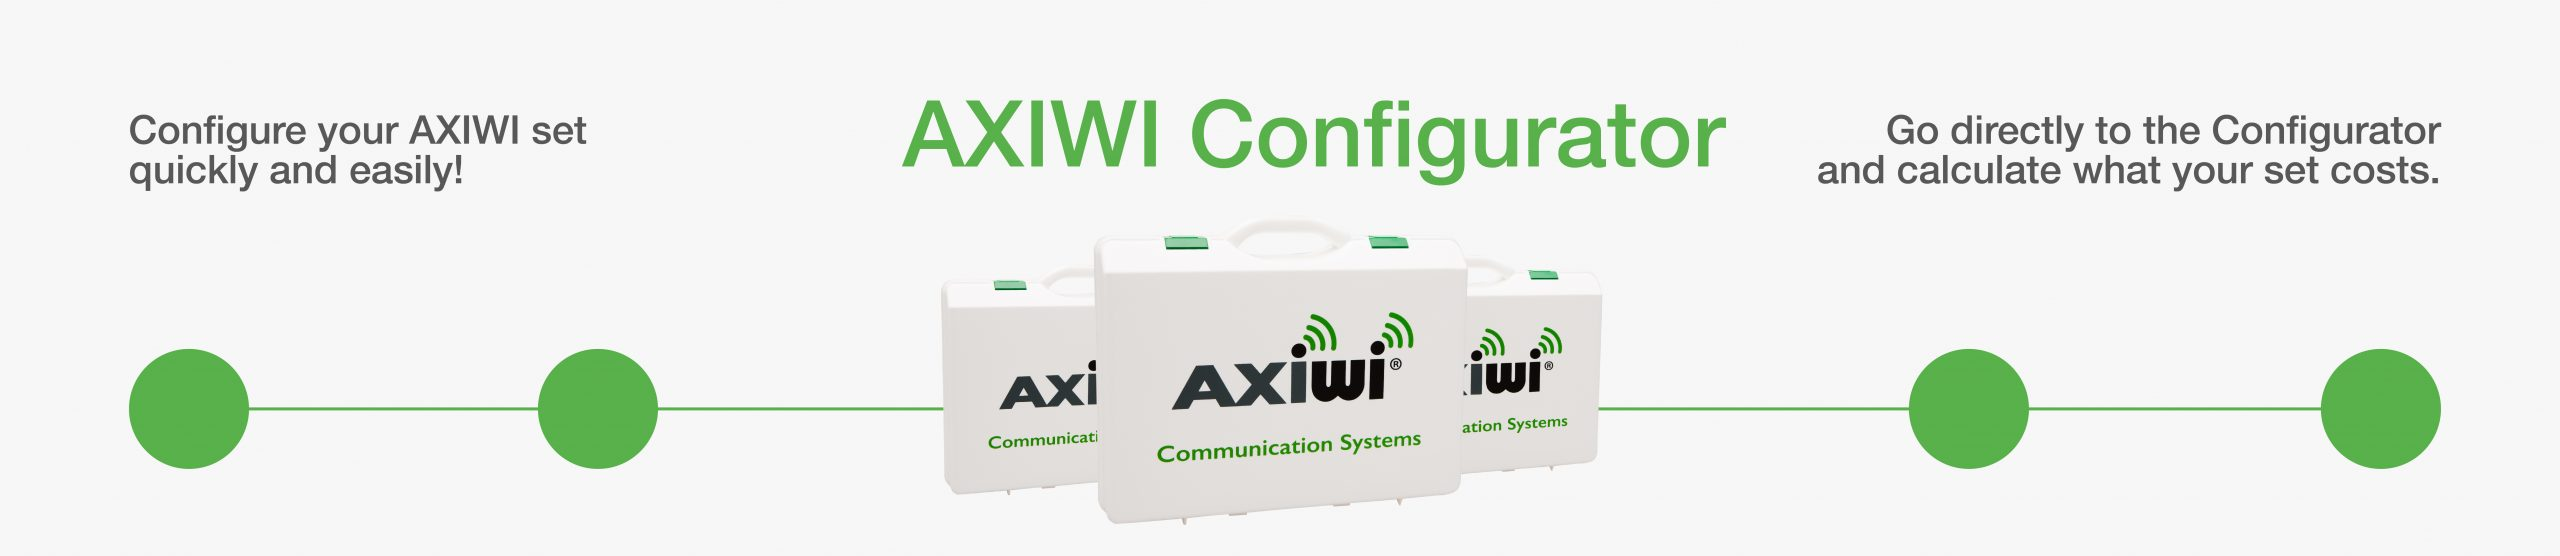 welcome at the axiwi configurator